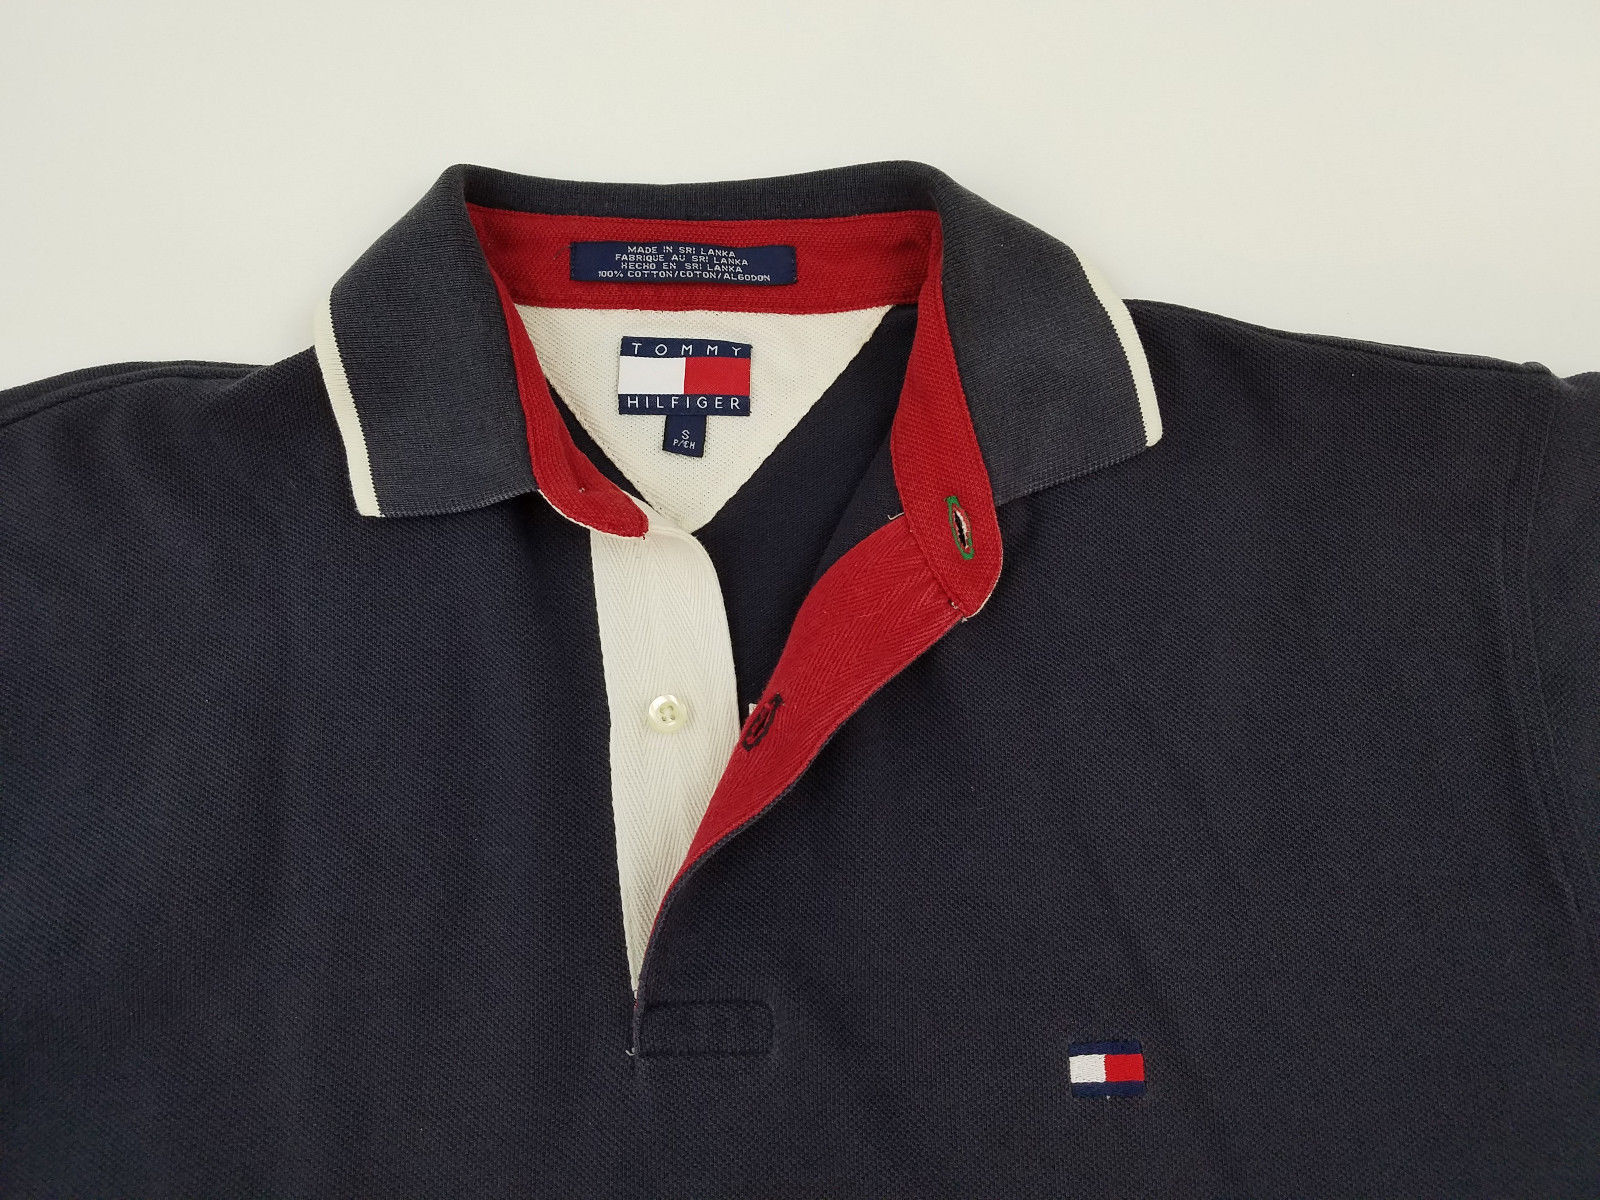 247ee4c6 Tommy Hilfiger Big Flag Polo Men's Small Stitch Spell Out Polo Shirt Vintage  90s - Ninety